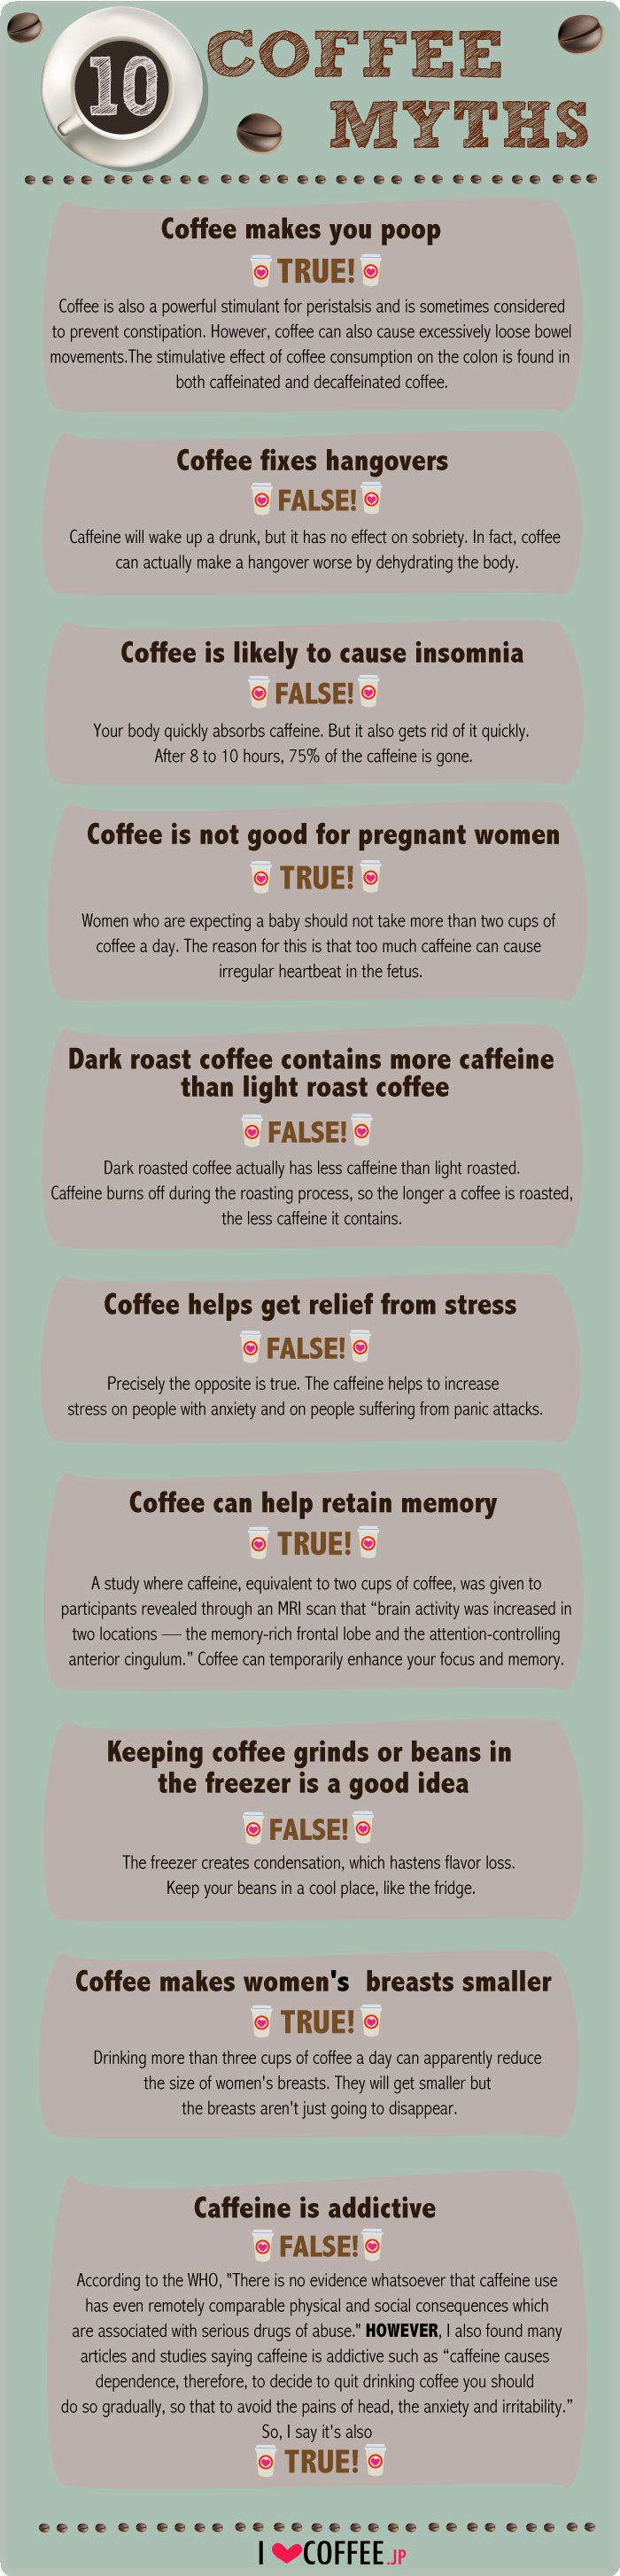 10 Coffee Myths. More here: http://www.bellaonline.com/articles/art31354.asp